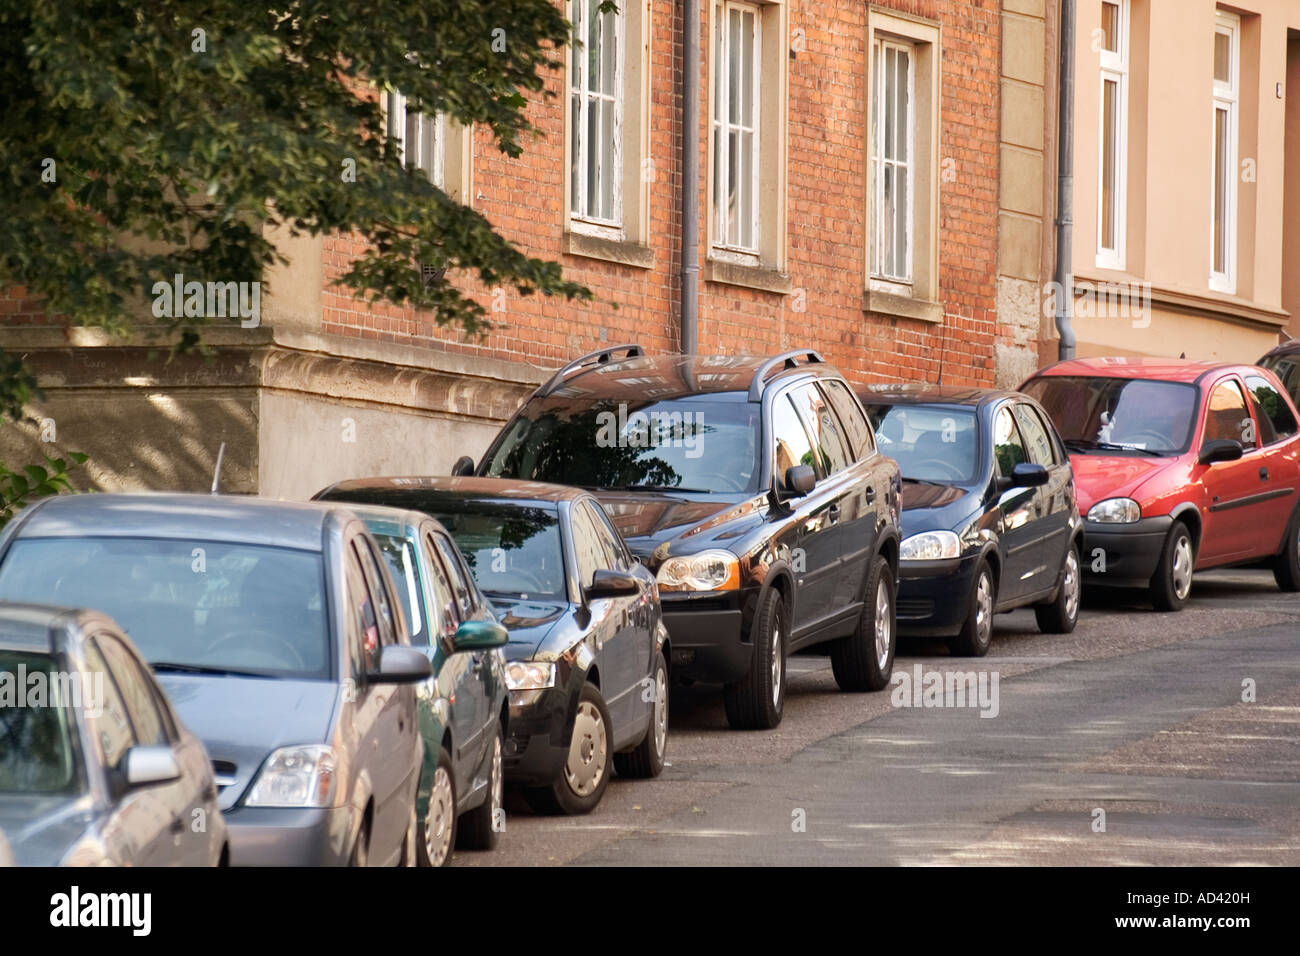 Parking row of cars in Wismar, Germany - Stock Image